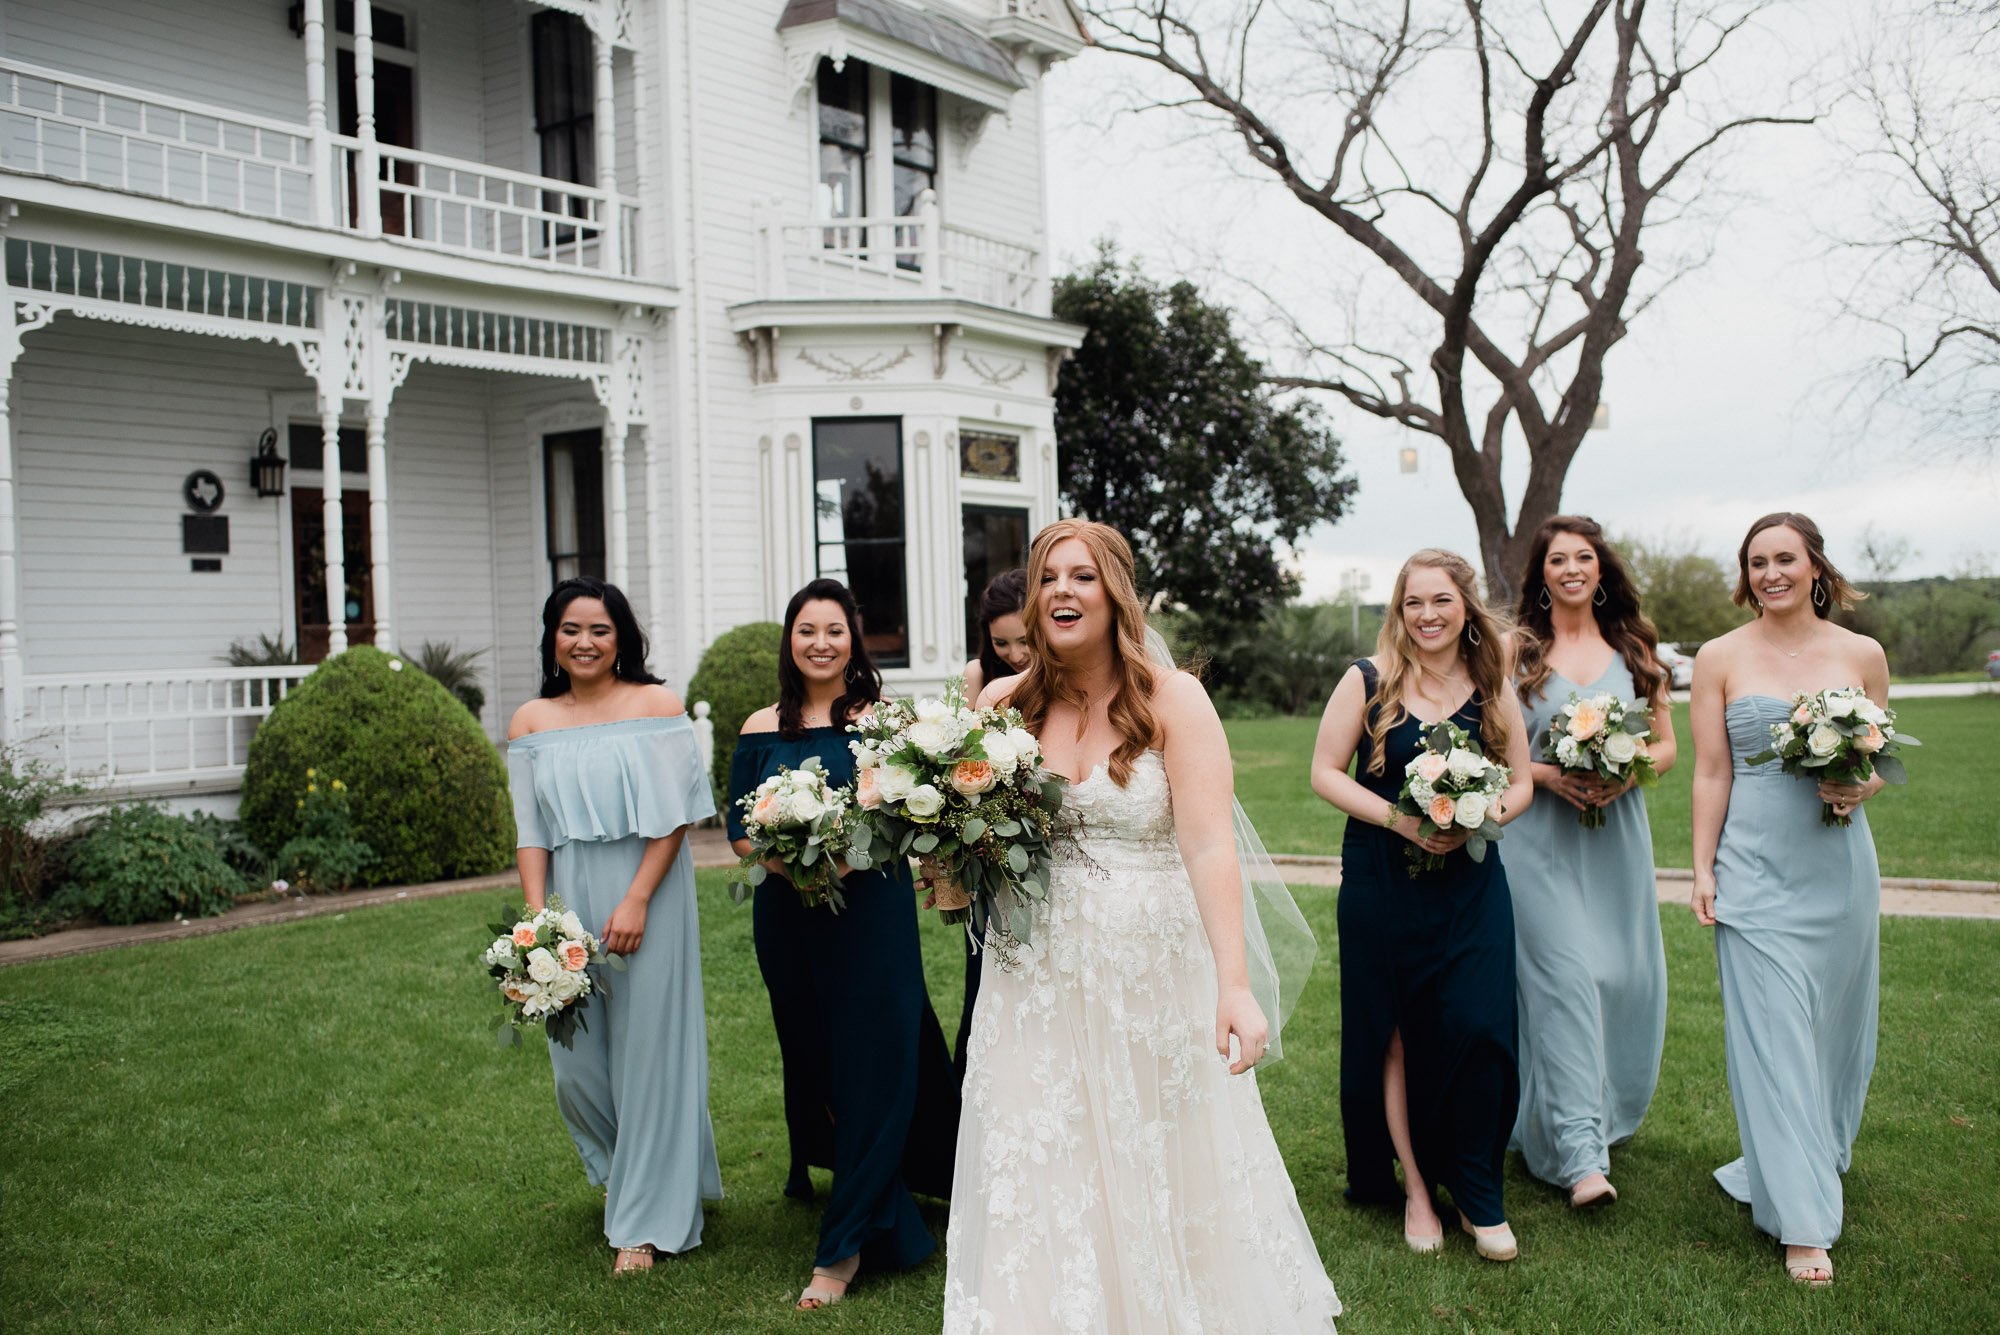 bridesmaids in mismatched blue dresses walk in a group at a spring wedding in austin